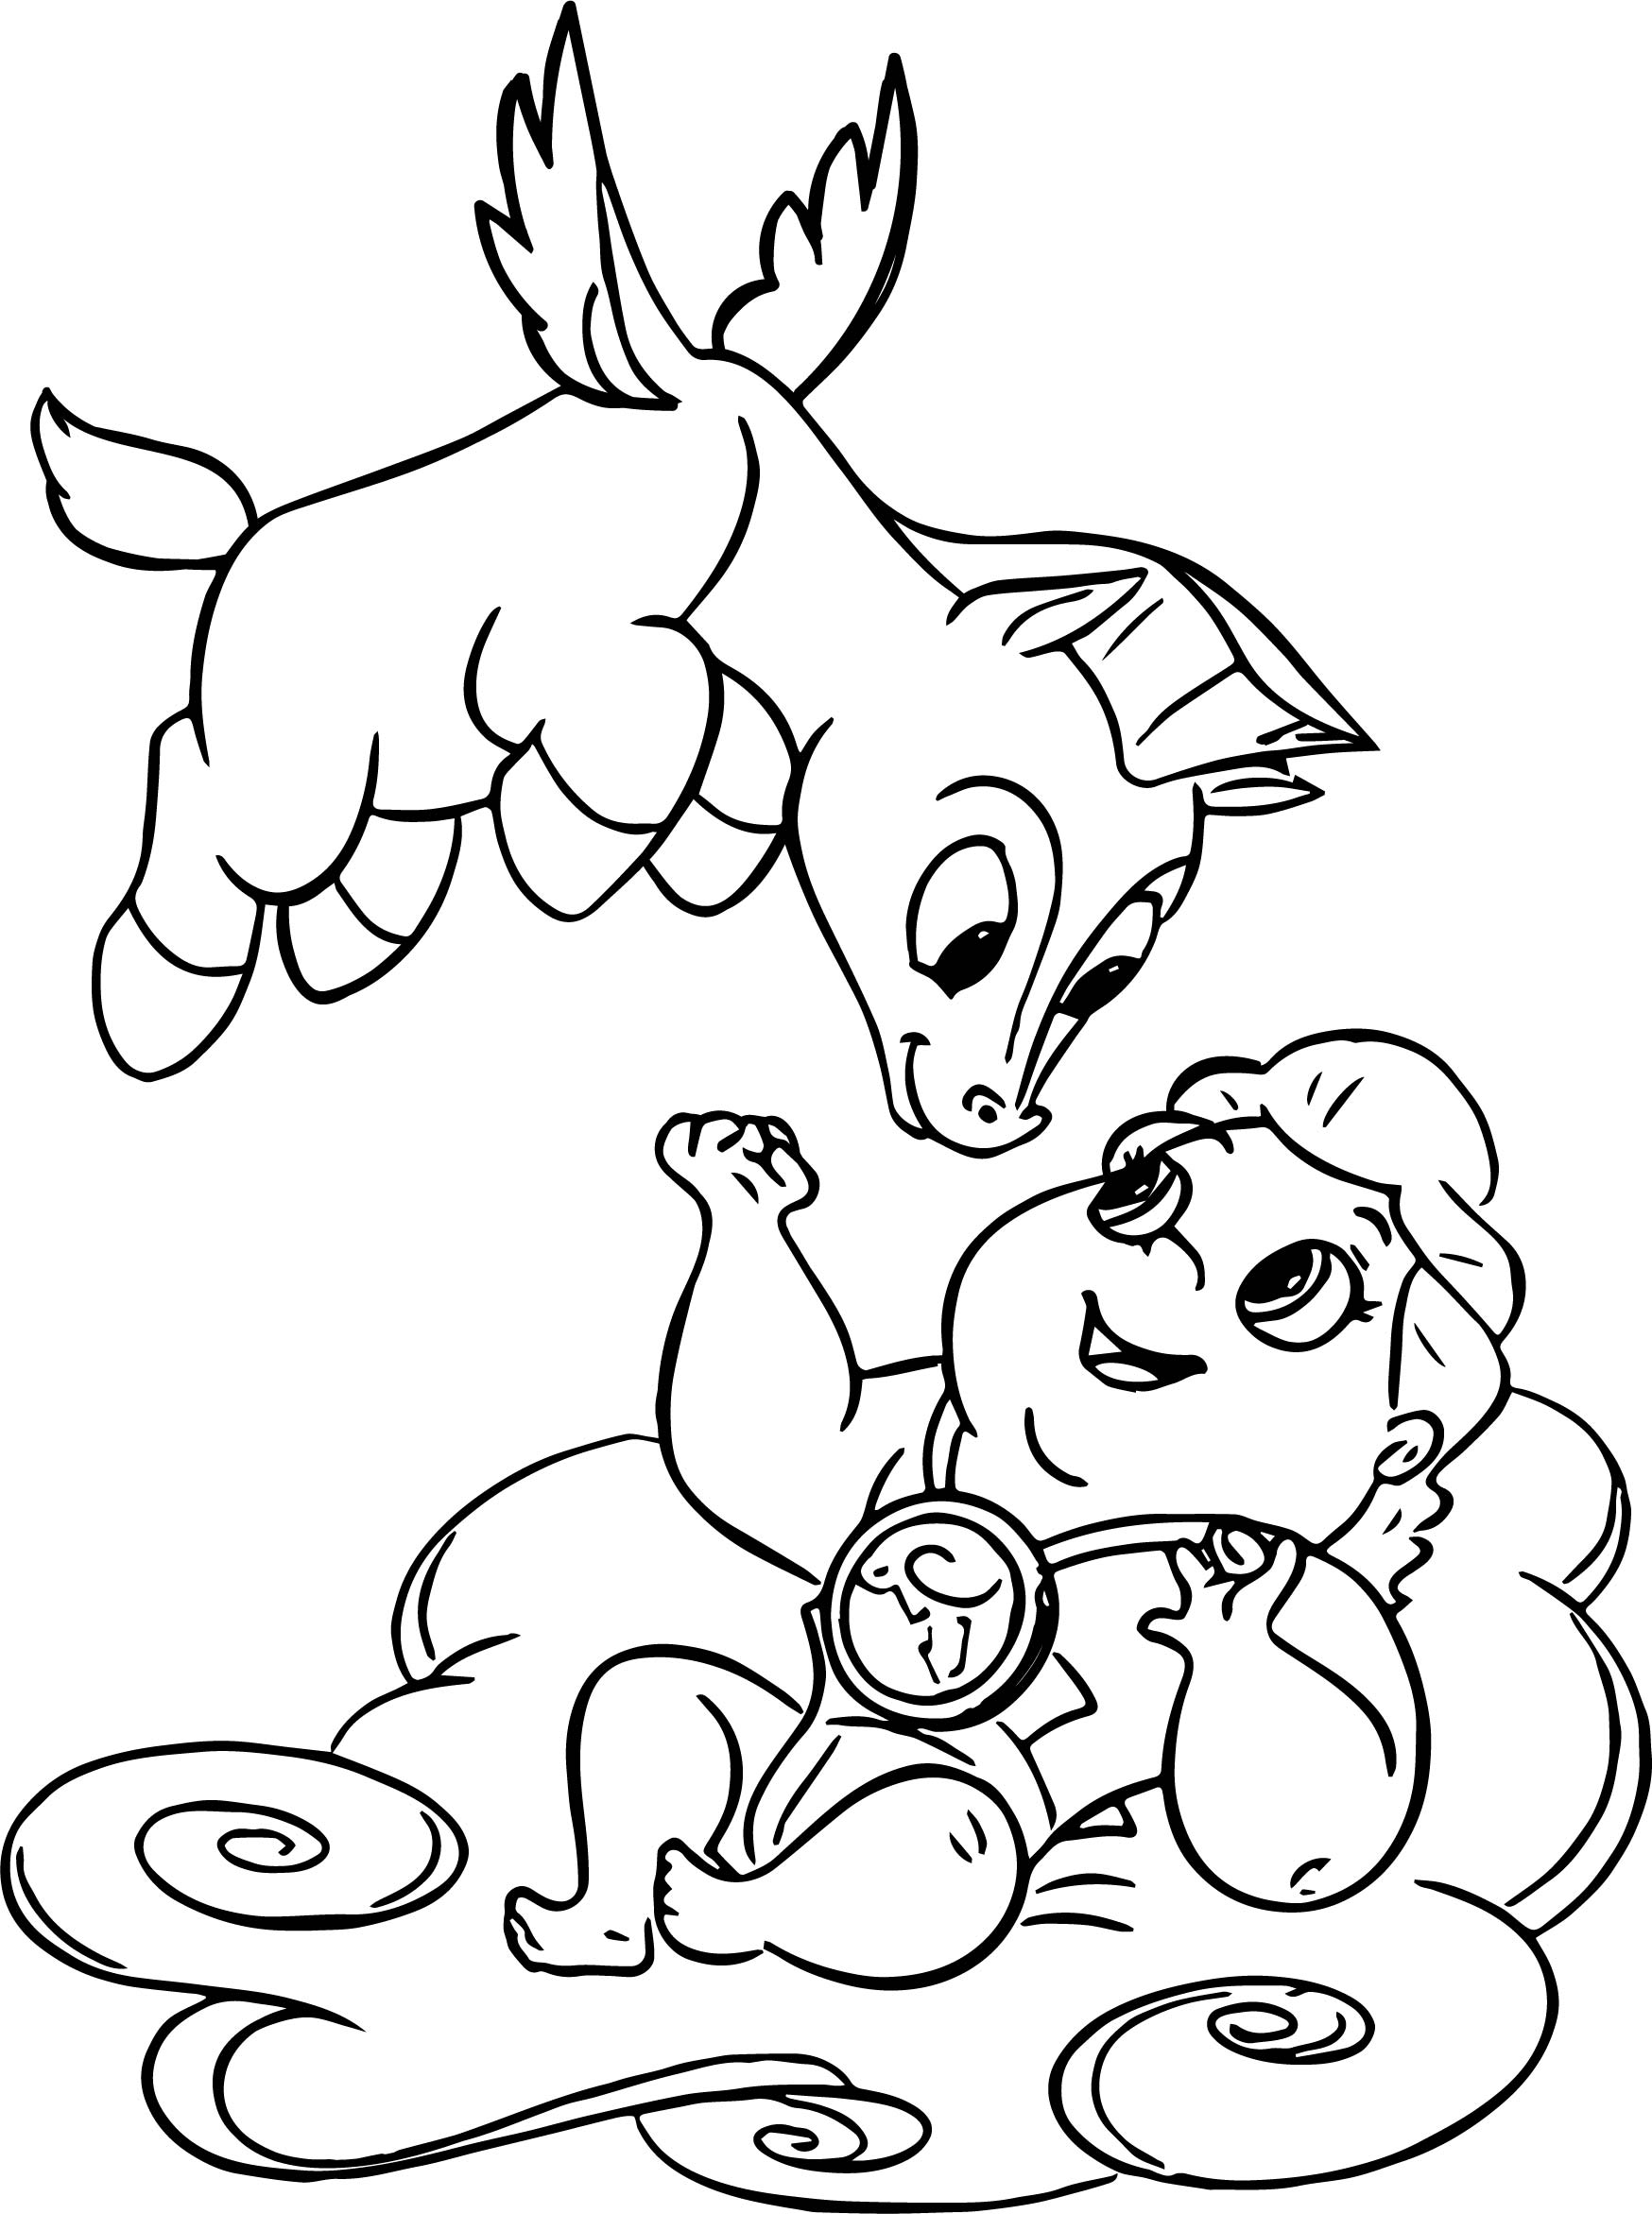 Baby Hercules And Flying Baby Pegasus